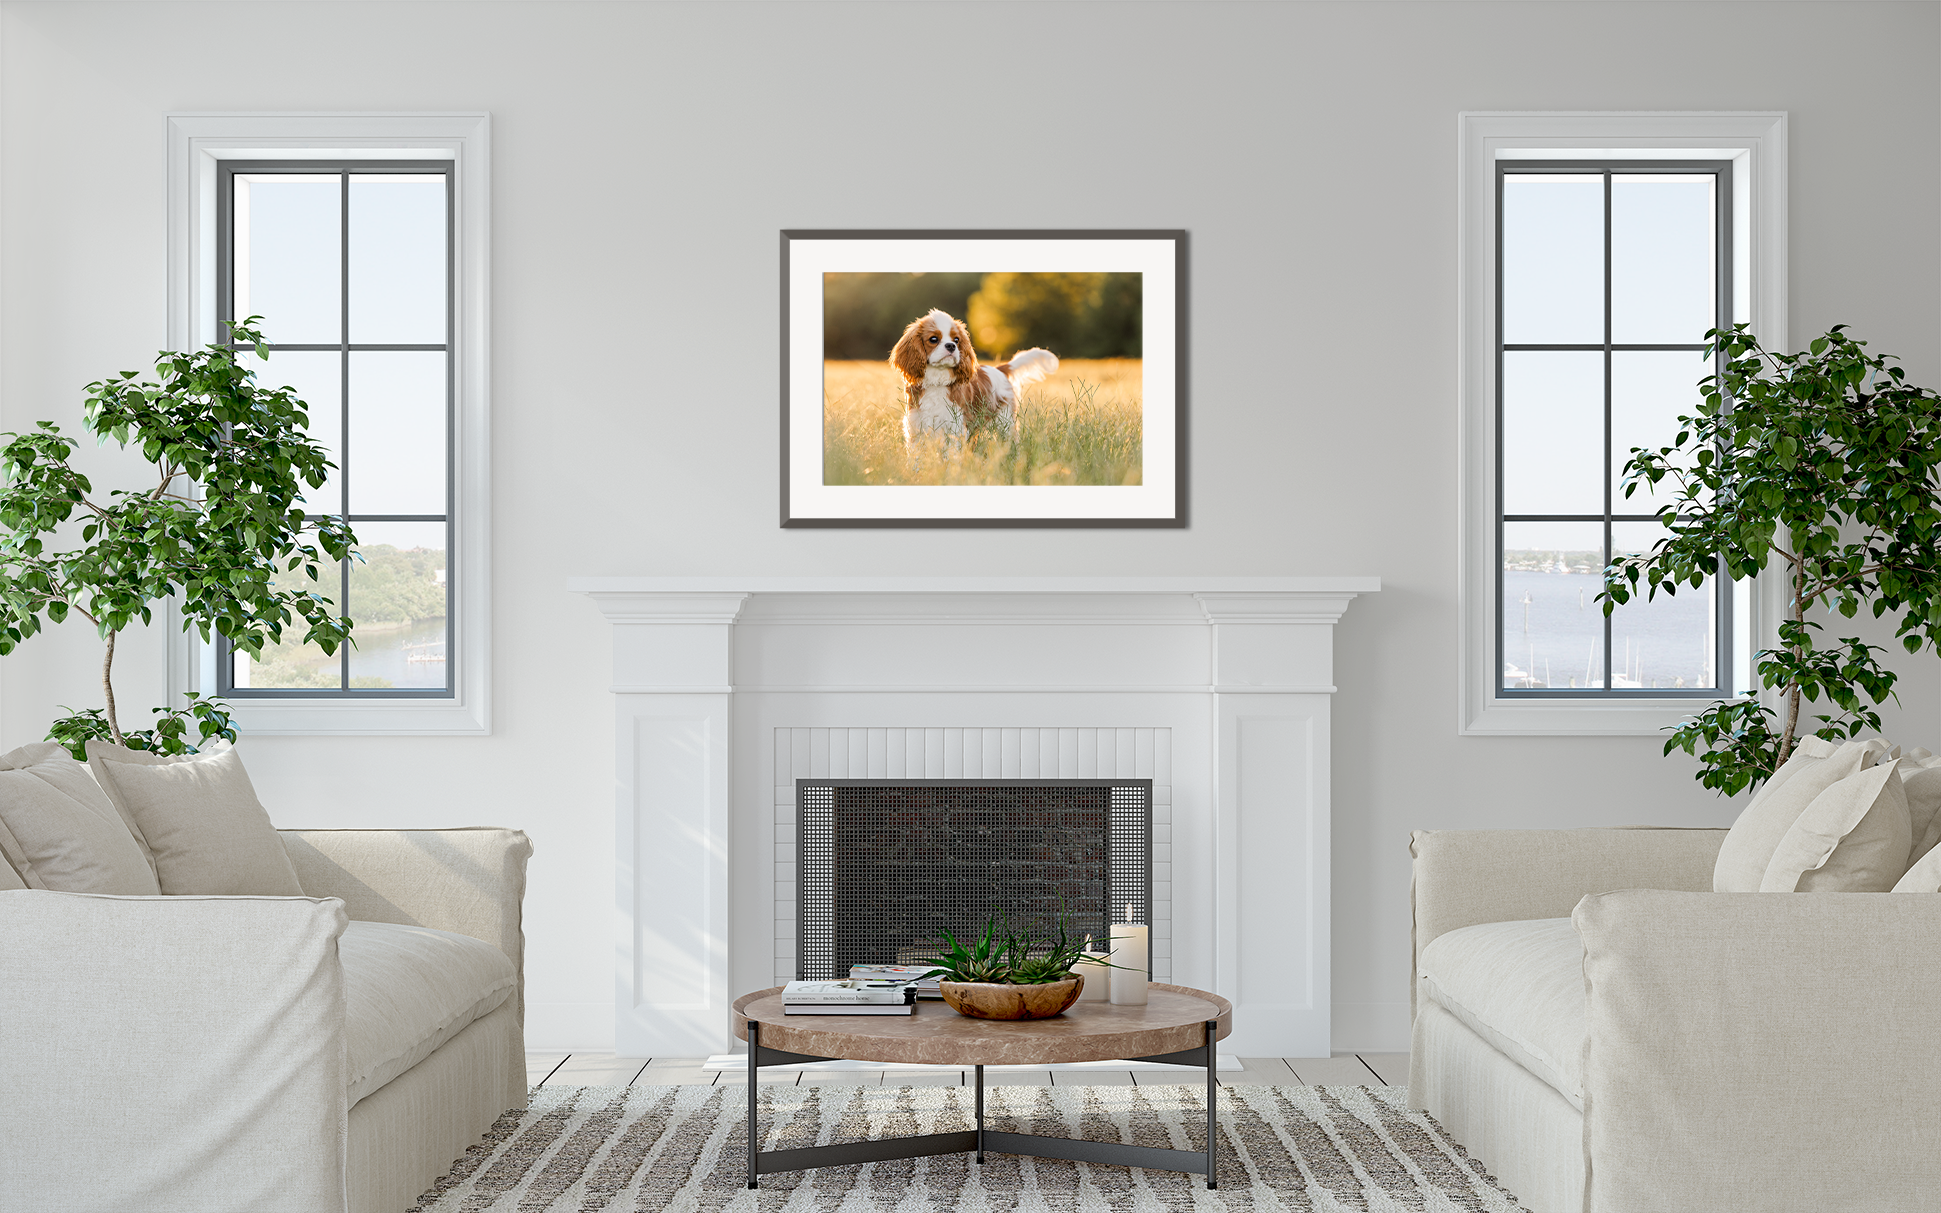 Get advice on How to Hang Wall Art - Portraits, Photographs, & Paintings - Like a Pro from professional pet photographer CM Bryson